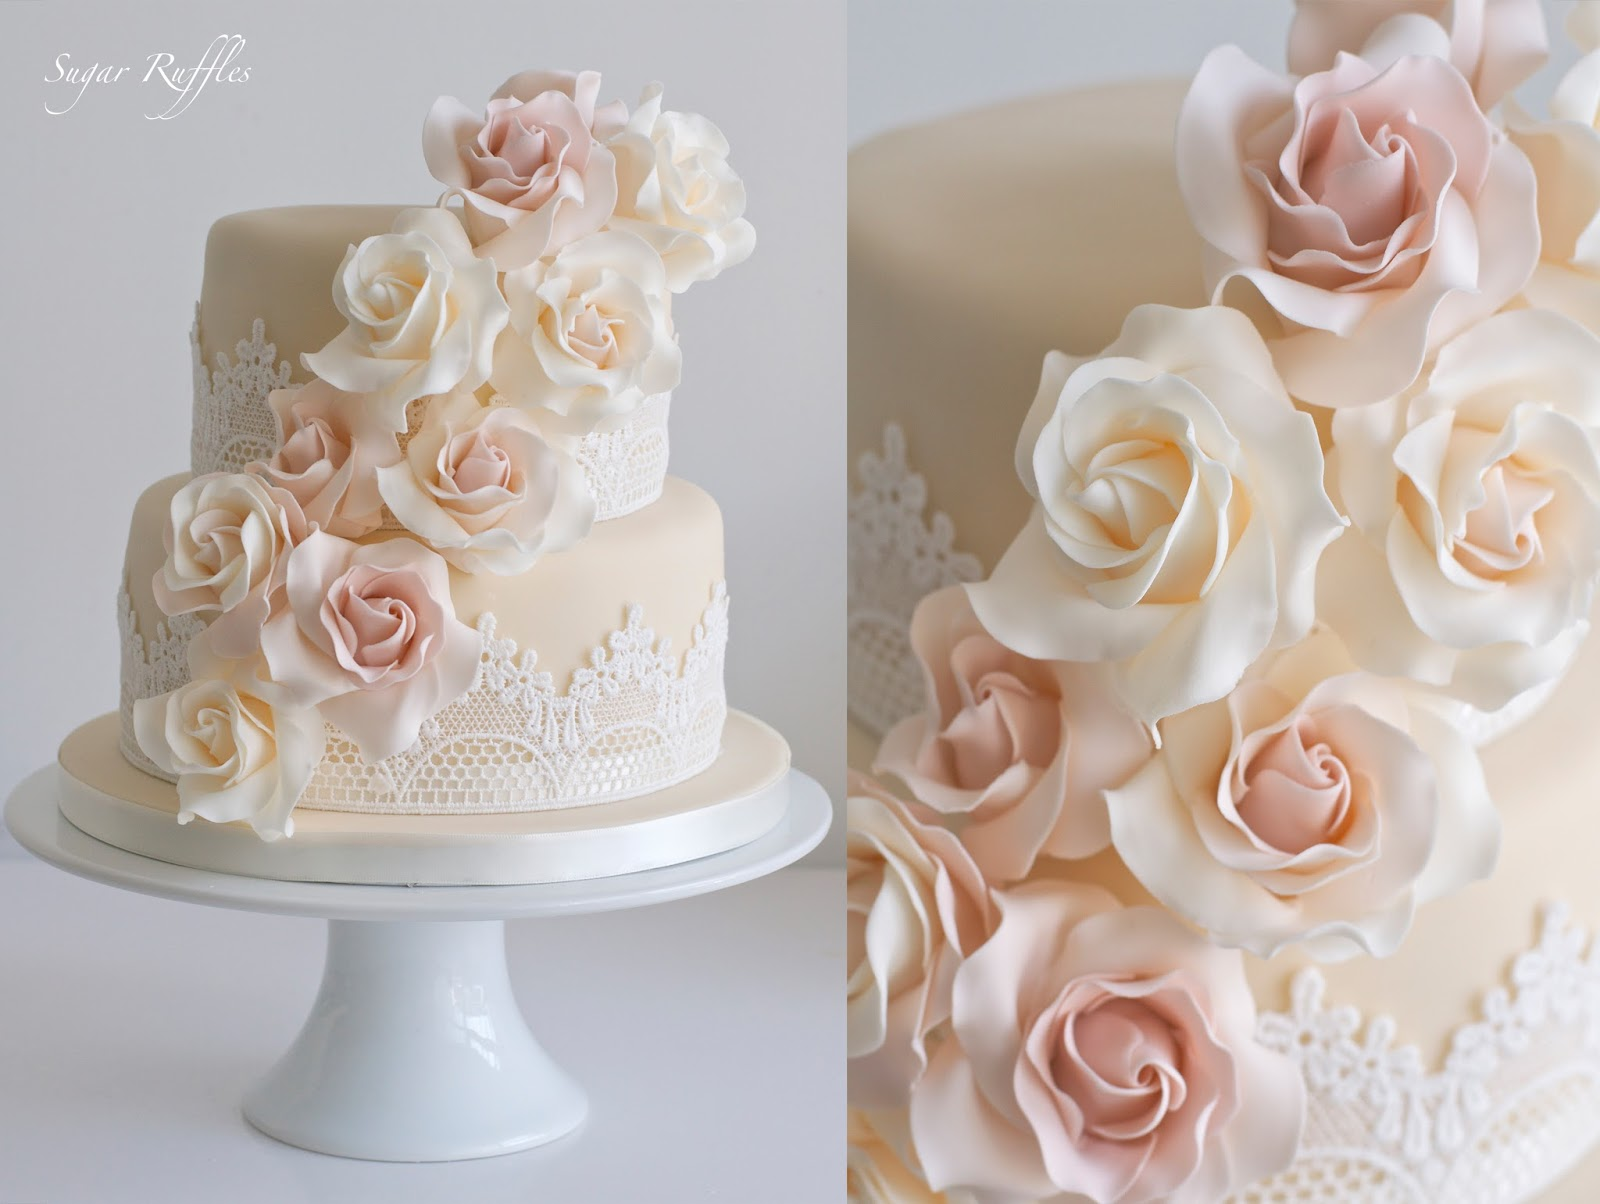 Low wood bay wedding cakes a 2 tier wedding cake with lace and cascading sugar roses junglespirit Image collections